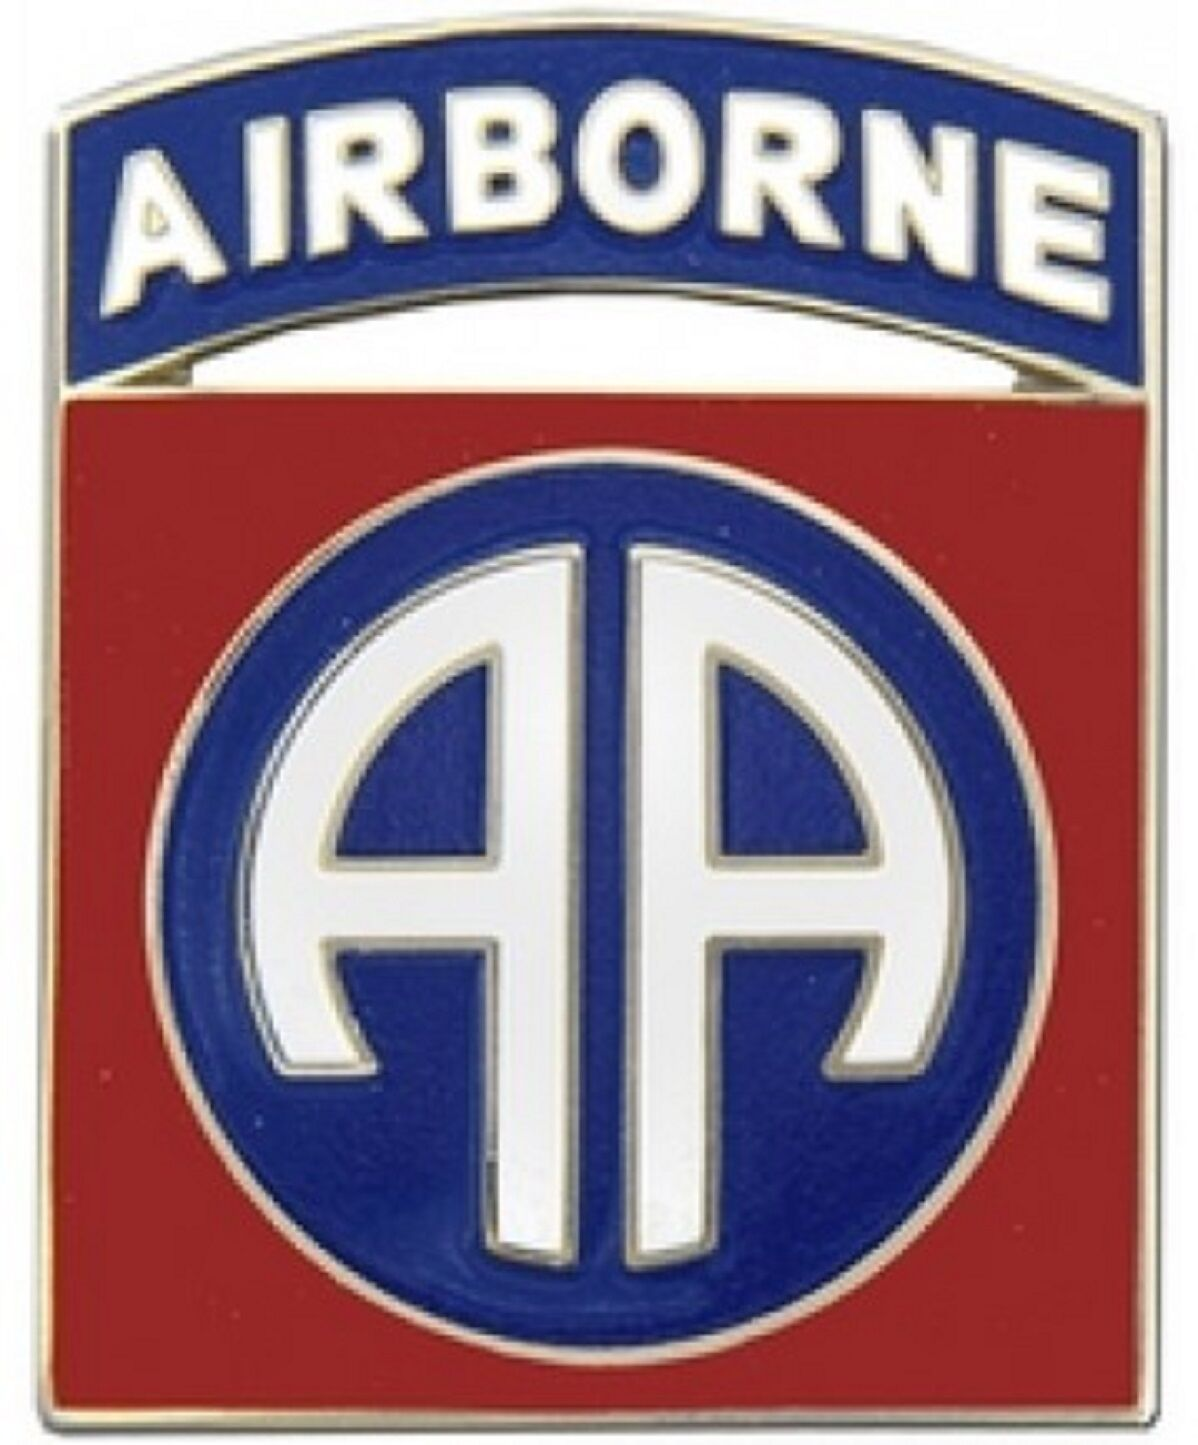 Primary image for US Army 82nd Airborne Division Combat Service Badge  (2 inch)